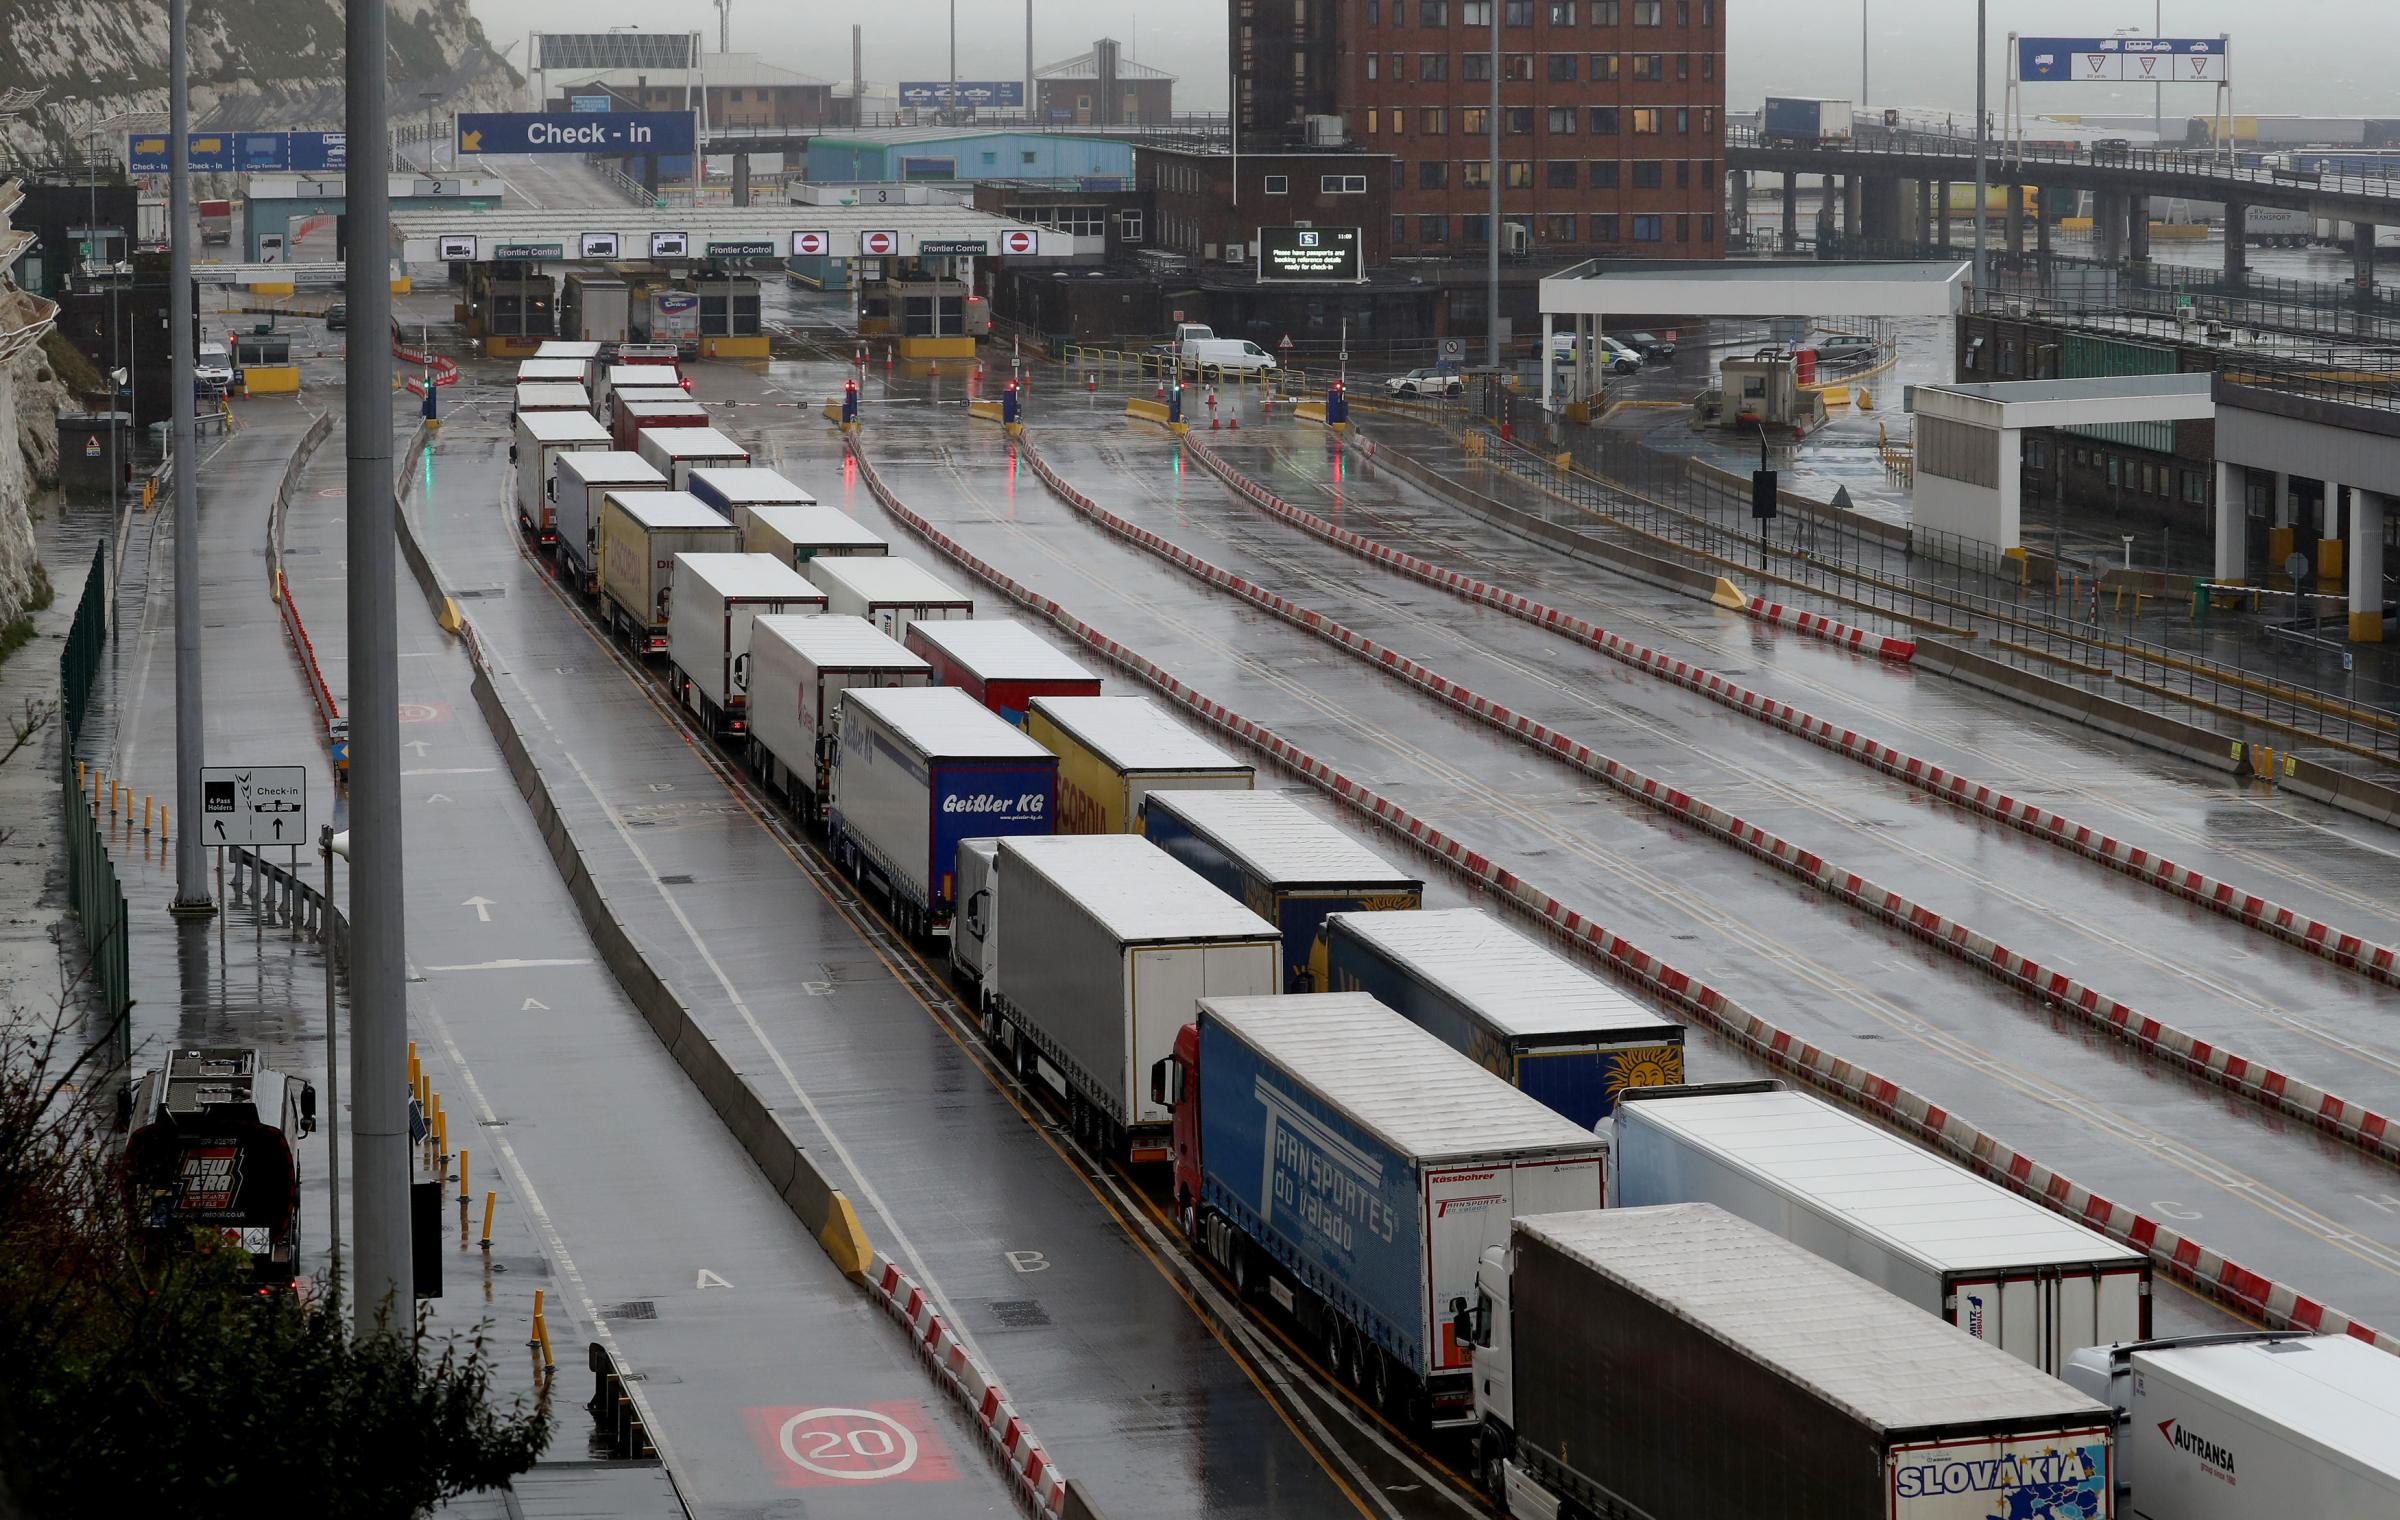 Brexit damage: One in four small firms have halted exports to European Union